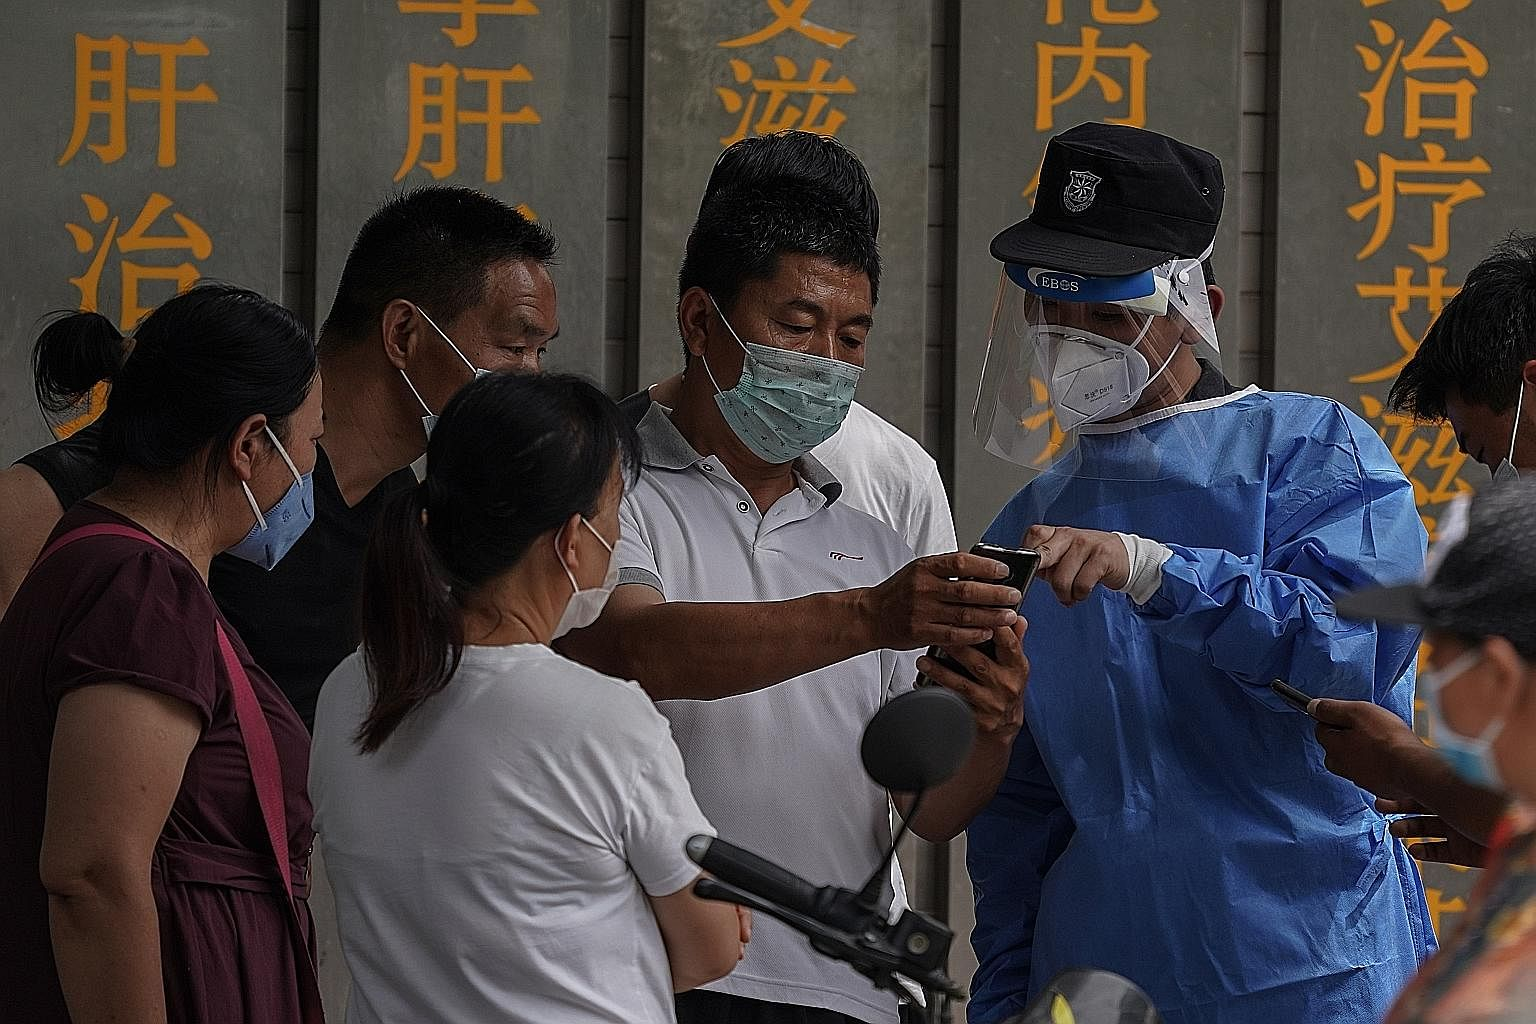 Beijing restricts travel as virus outbreak spreads beyond capital